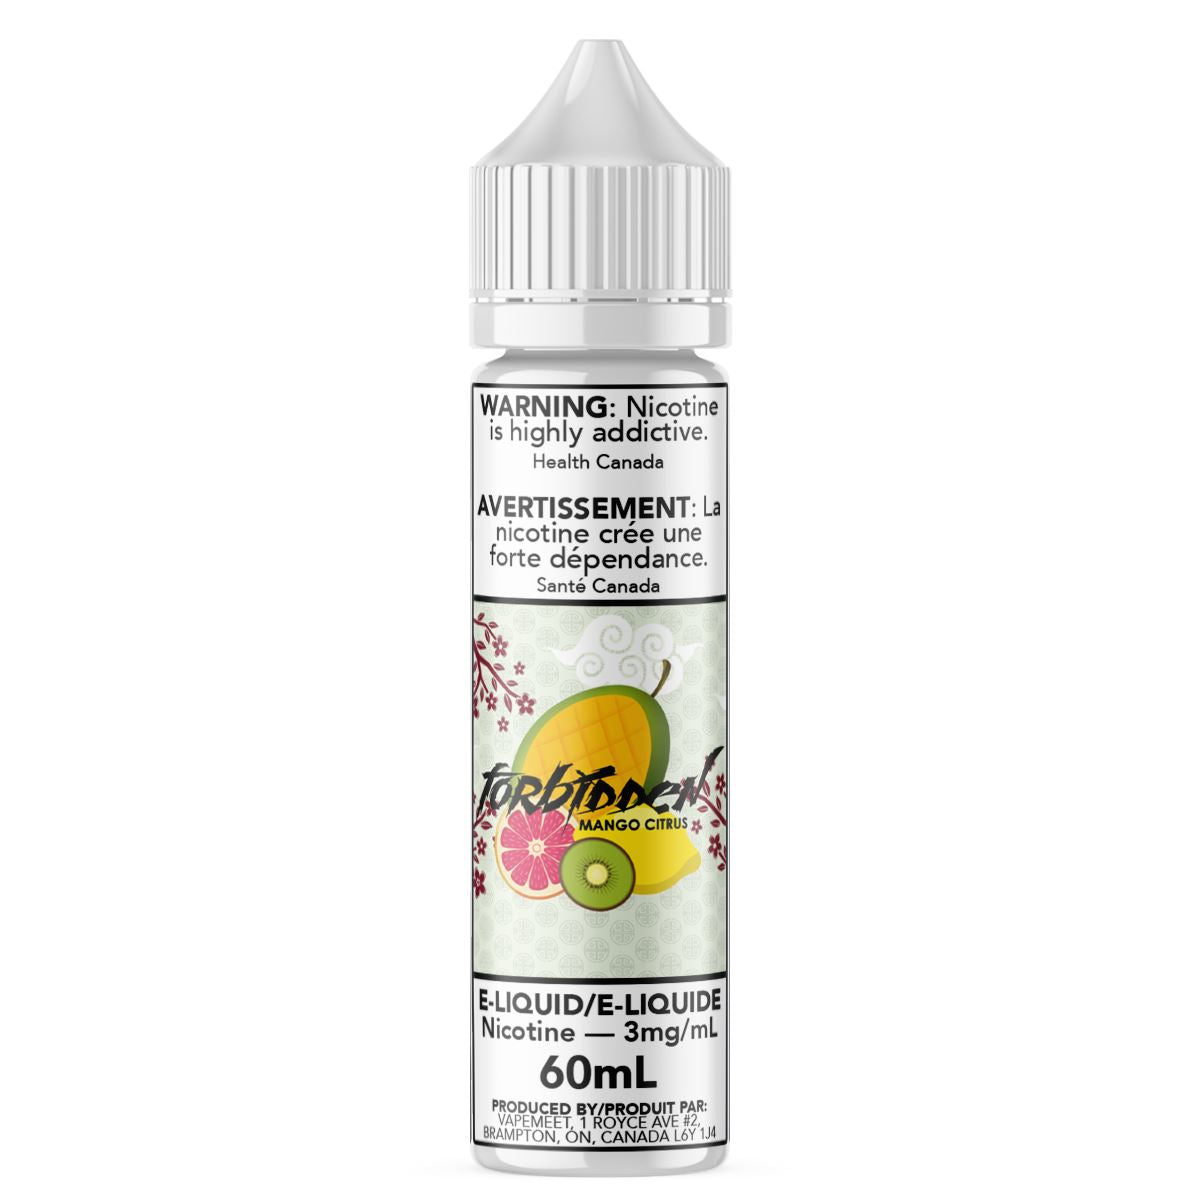 Forbidden - Mango Citrus E-Liquid Forbidden 60mL 0 mg/mL